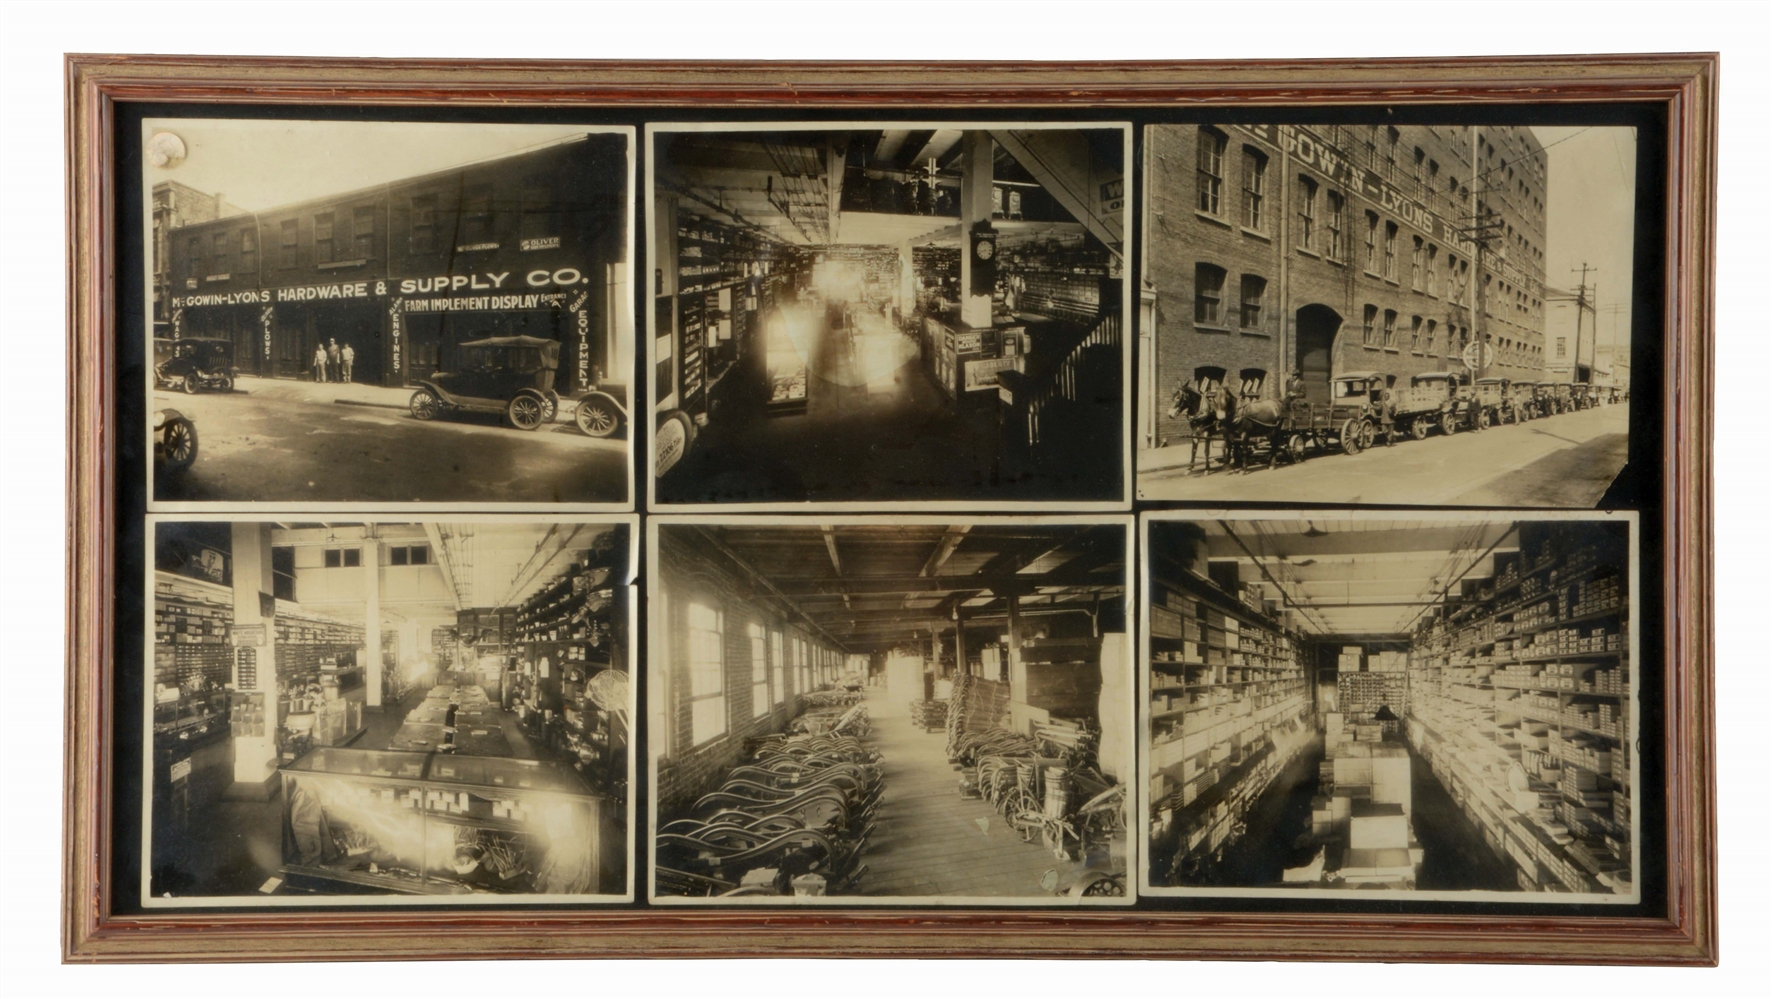 LOT OF 6: FRAMED PHOTOS OF MCGOWIN-LYONS HARDWARE & SUPPLY CO.